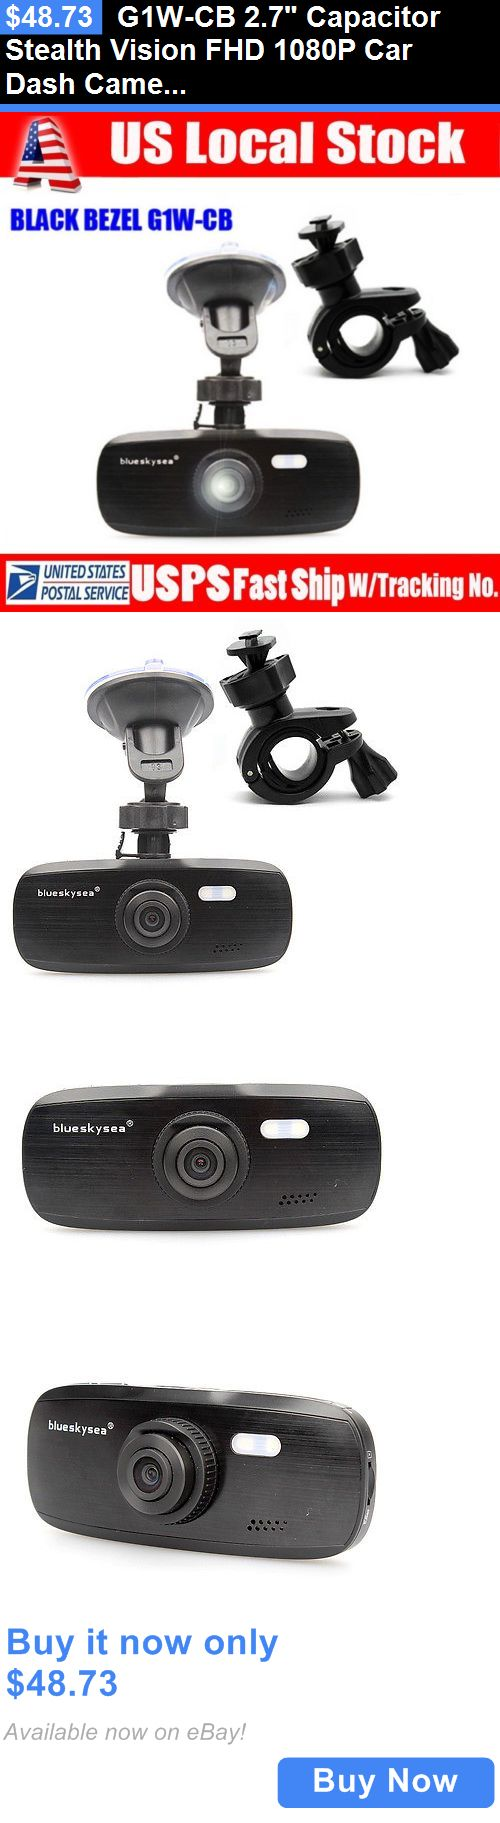 Other Car Video: G1w-Cb 2.7 Capacitor Stealth Vision Fhd 1080P Car Dash Camera Dvr +Mirror Mount BUY IT NOW ONLY: $48.73